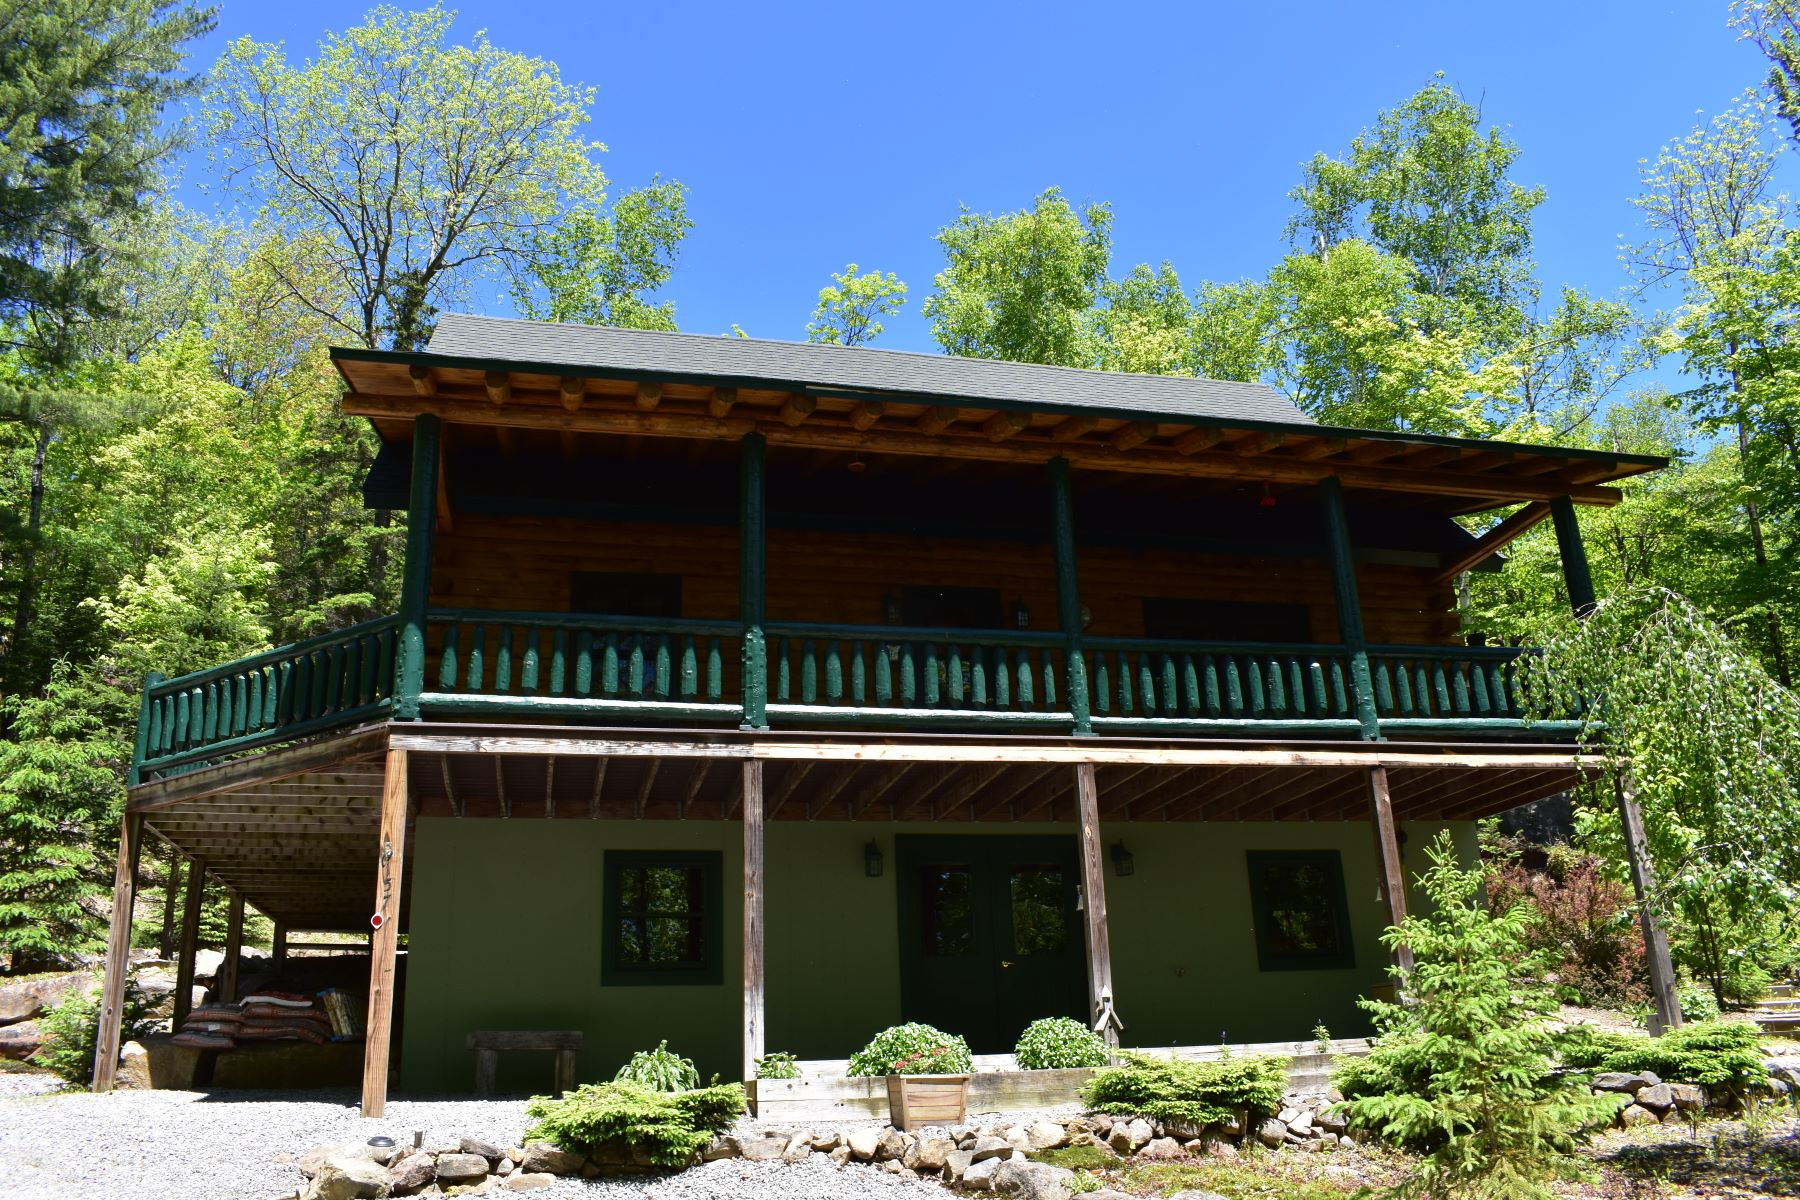 Single Family Homes for Sale at Log Cabin on Mountaintop 157 Mountaintop Dr Indian Lake, New York 12842 United States